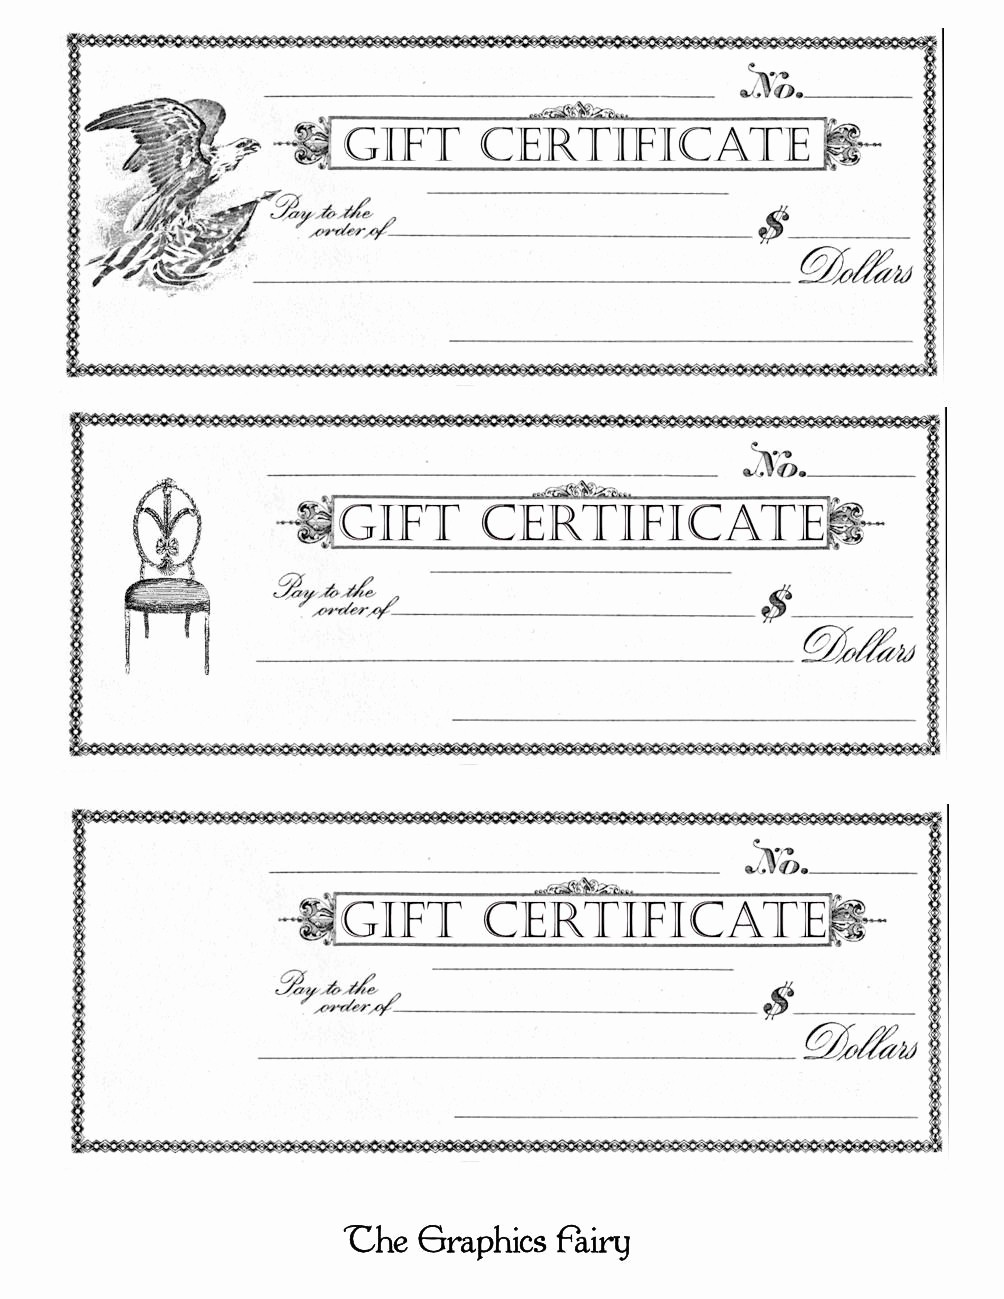 Gift Certificate Samples Free Templates Beautiful Free Printable Gift Certificates the Graphics Fairy